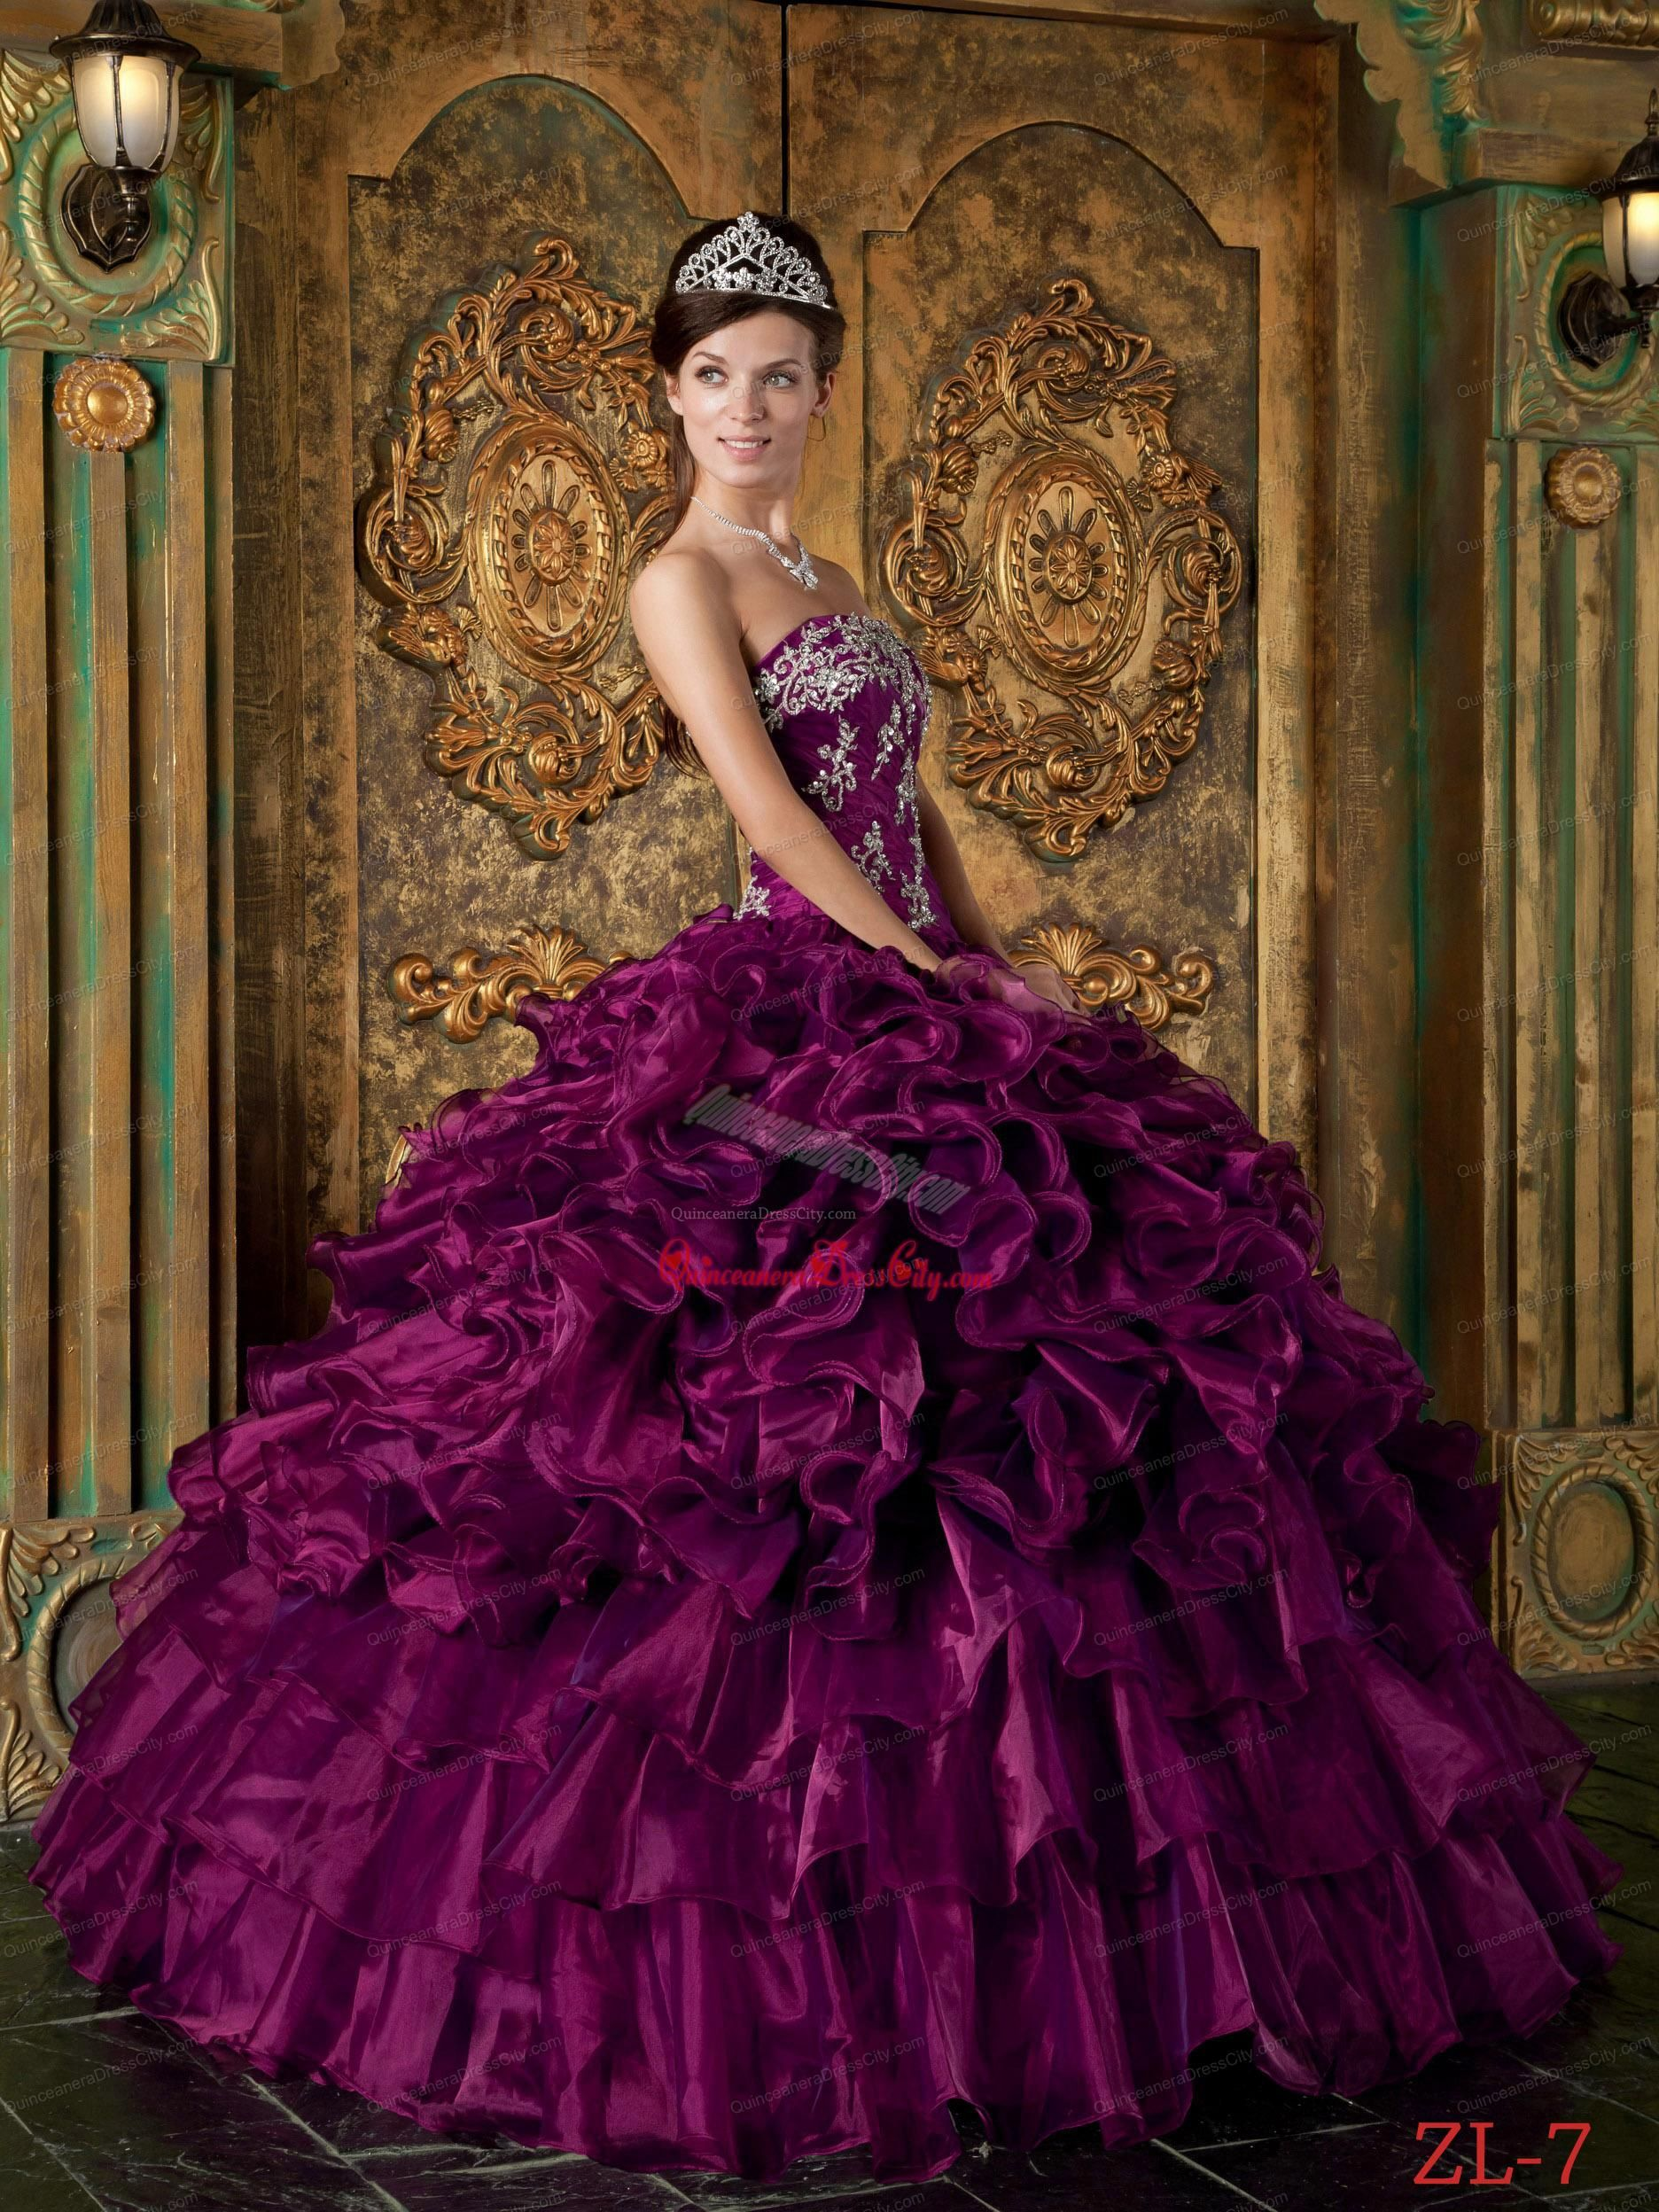 def6d14025b This color! Eggplant Purple Ball Gown Strapless Floor-length Organza  Ruffles Quinceanera Dress.